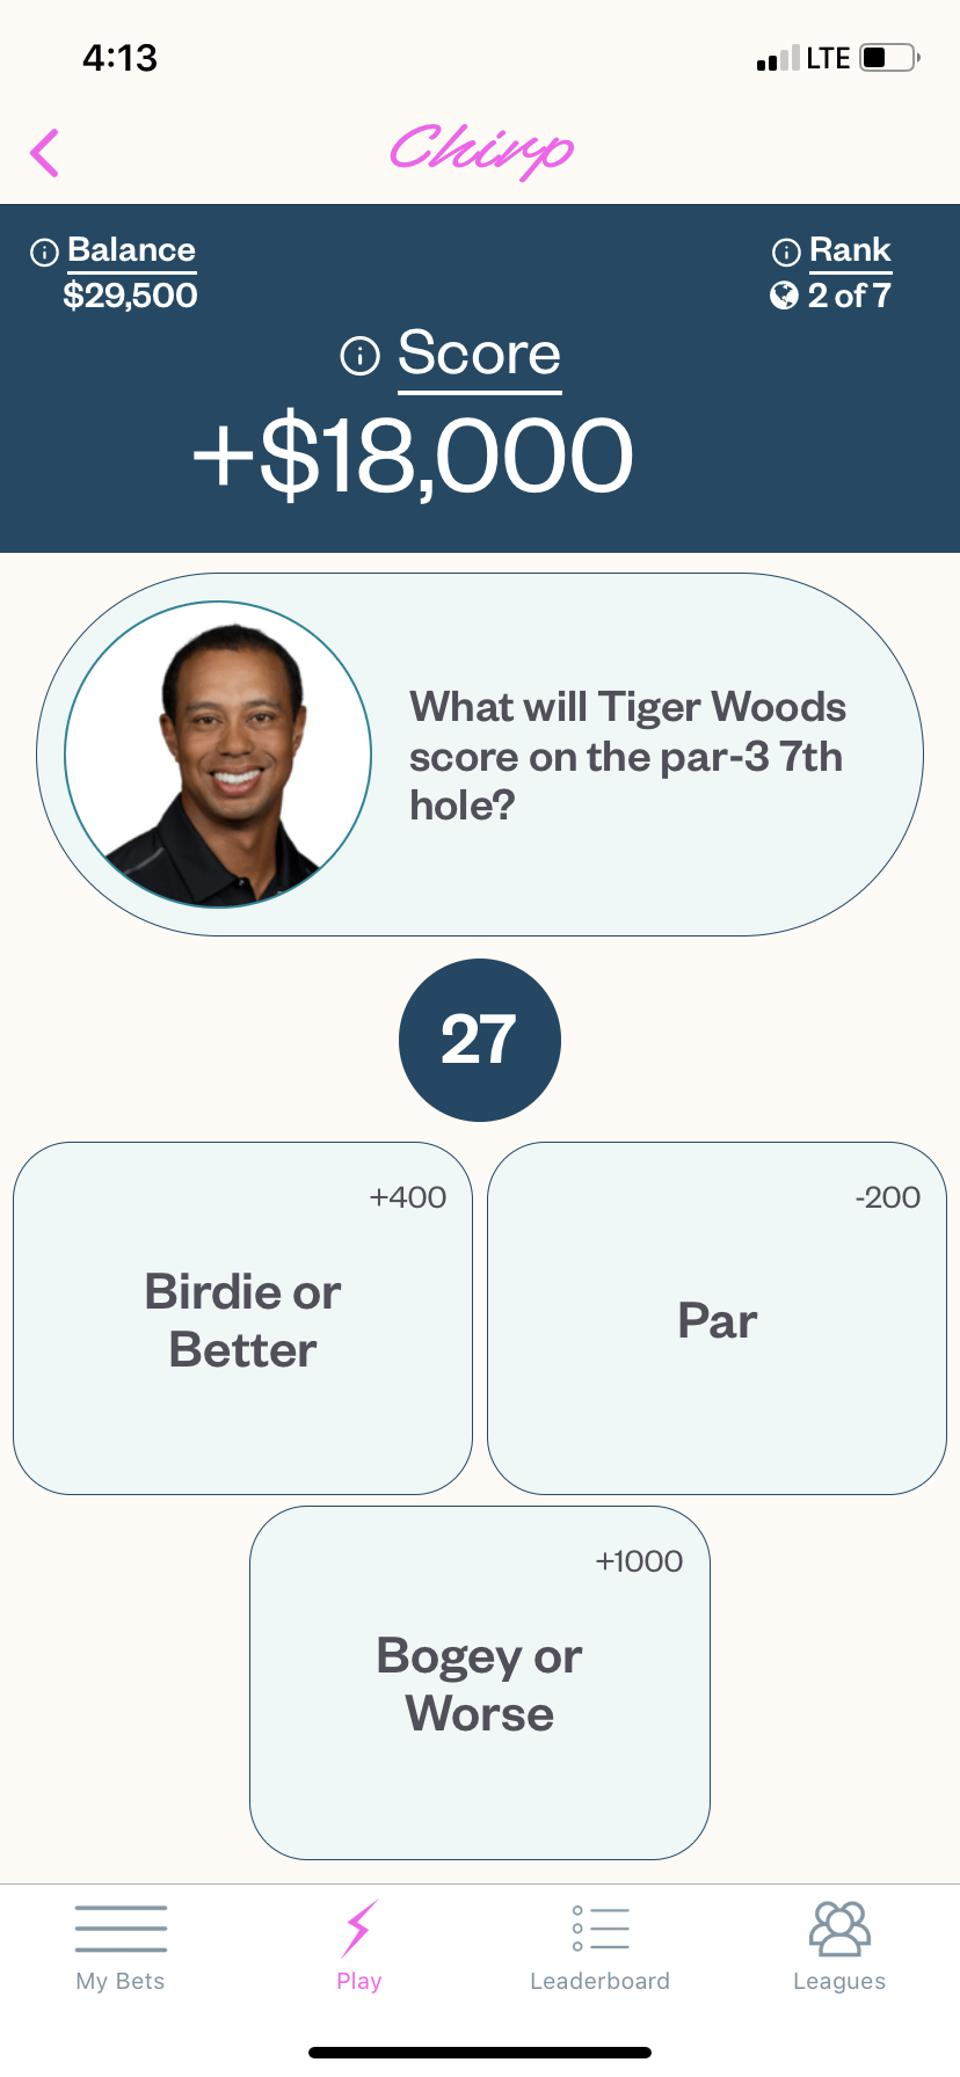 the live betting screen on golf gaming app Chirp